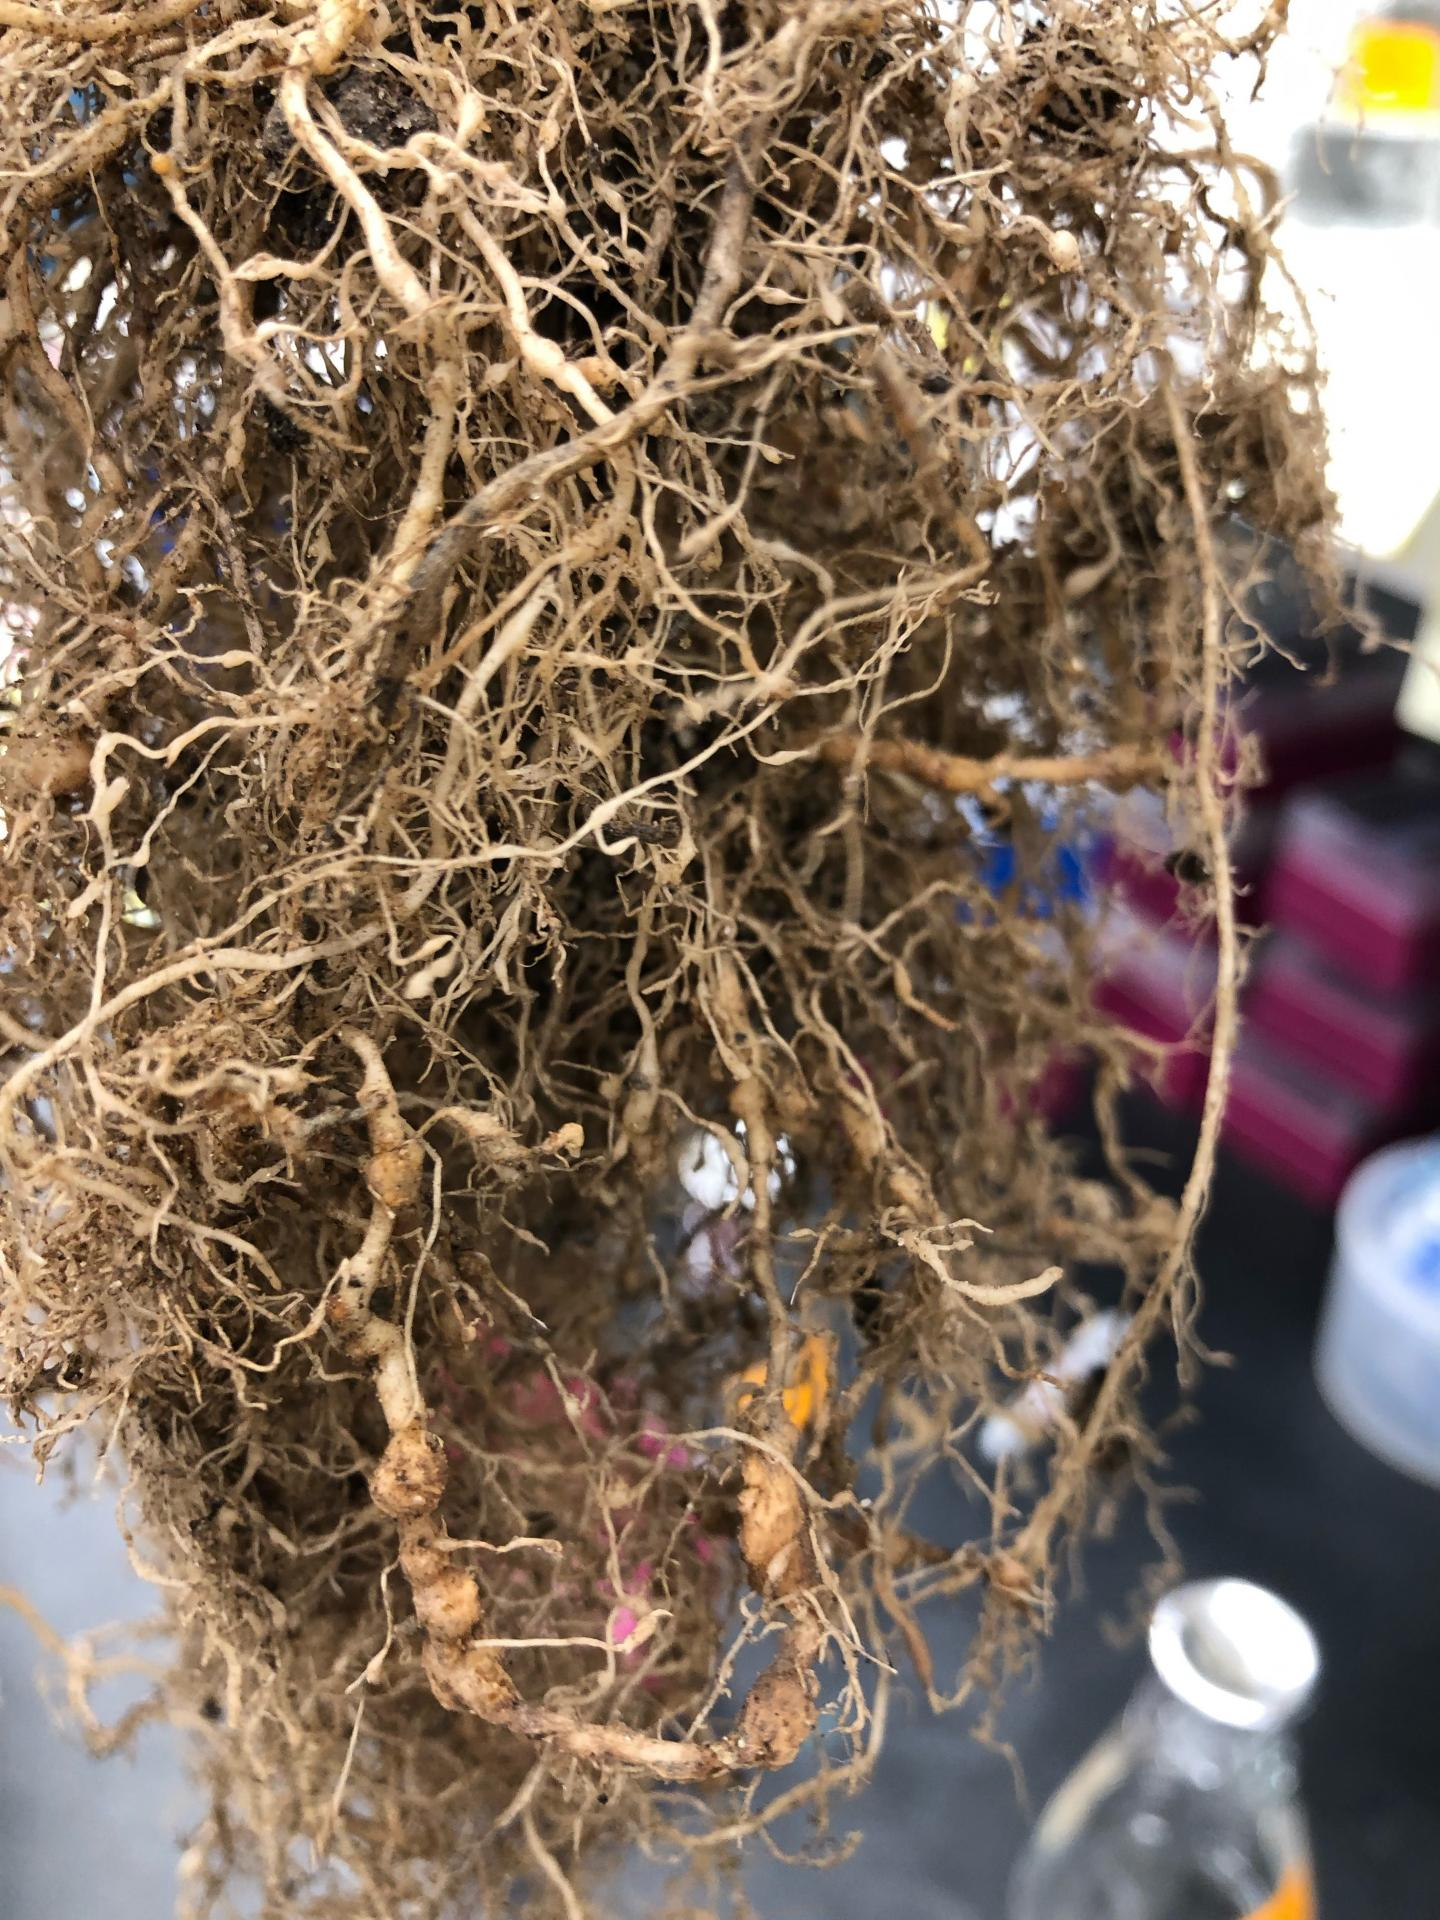 Tomato Roots Infested with Nematodes